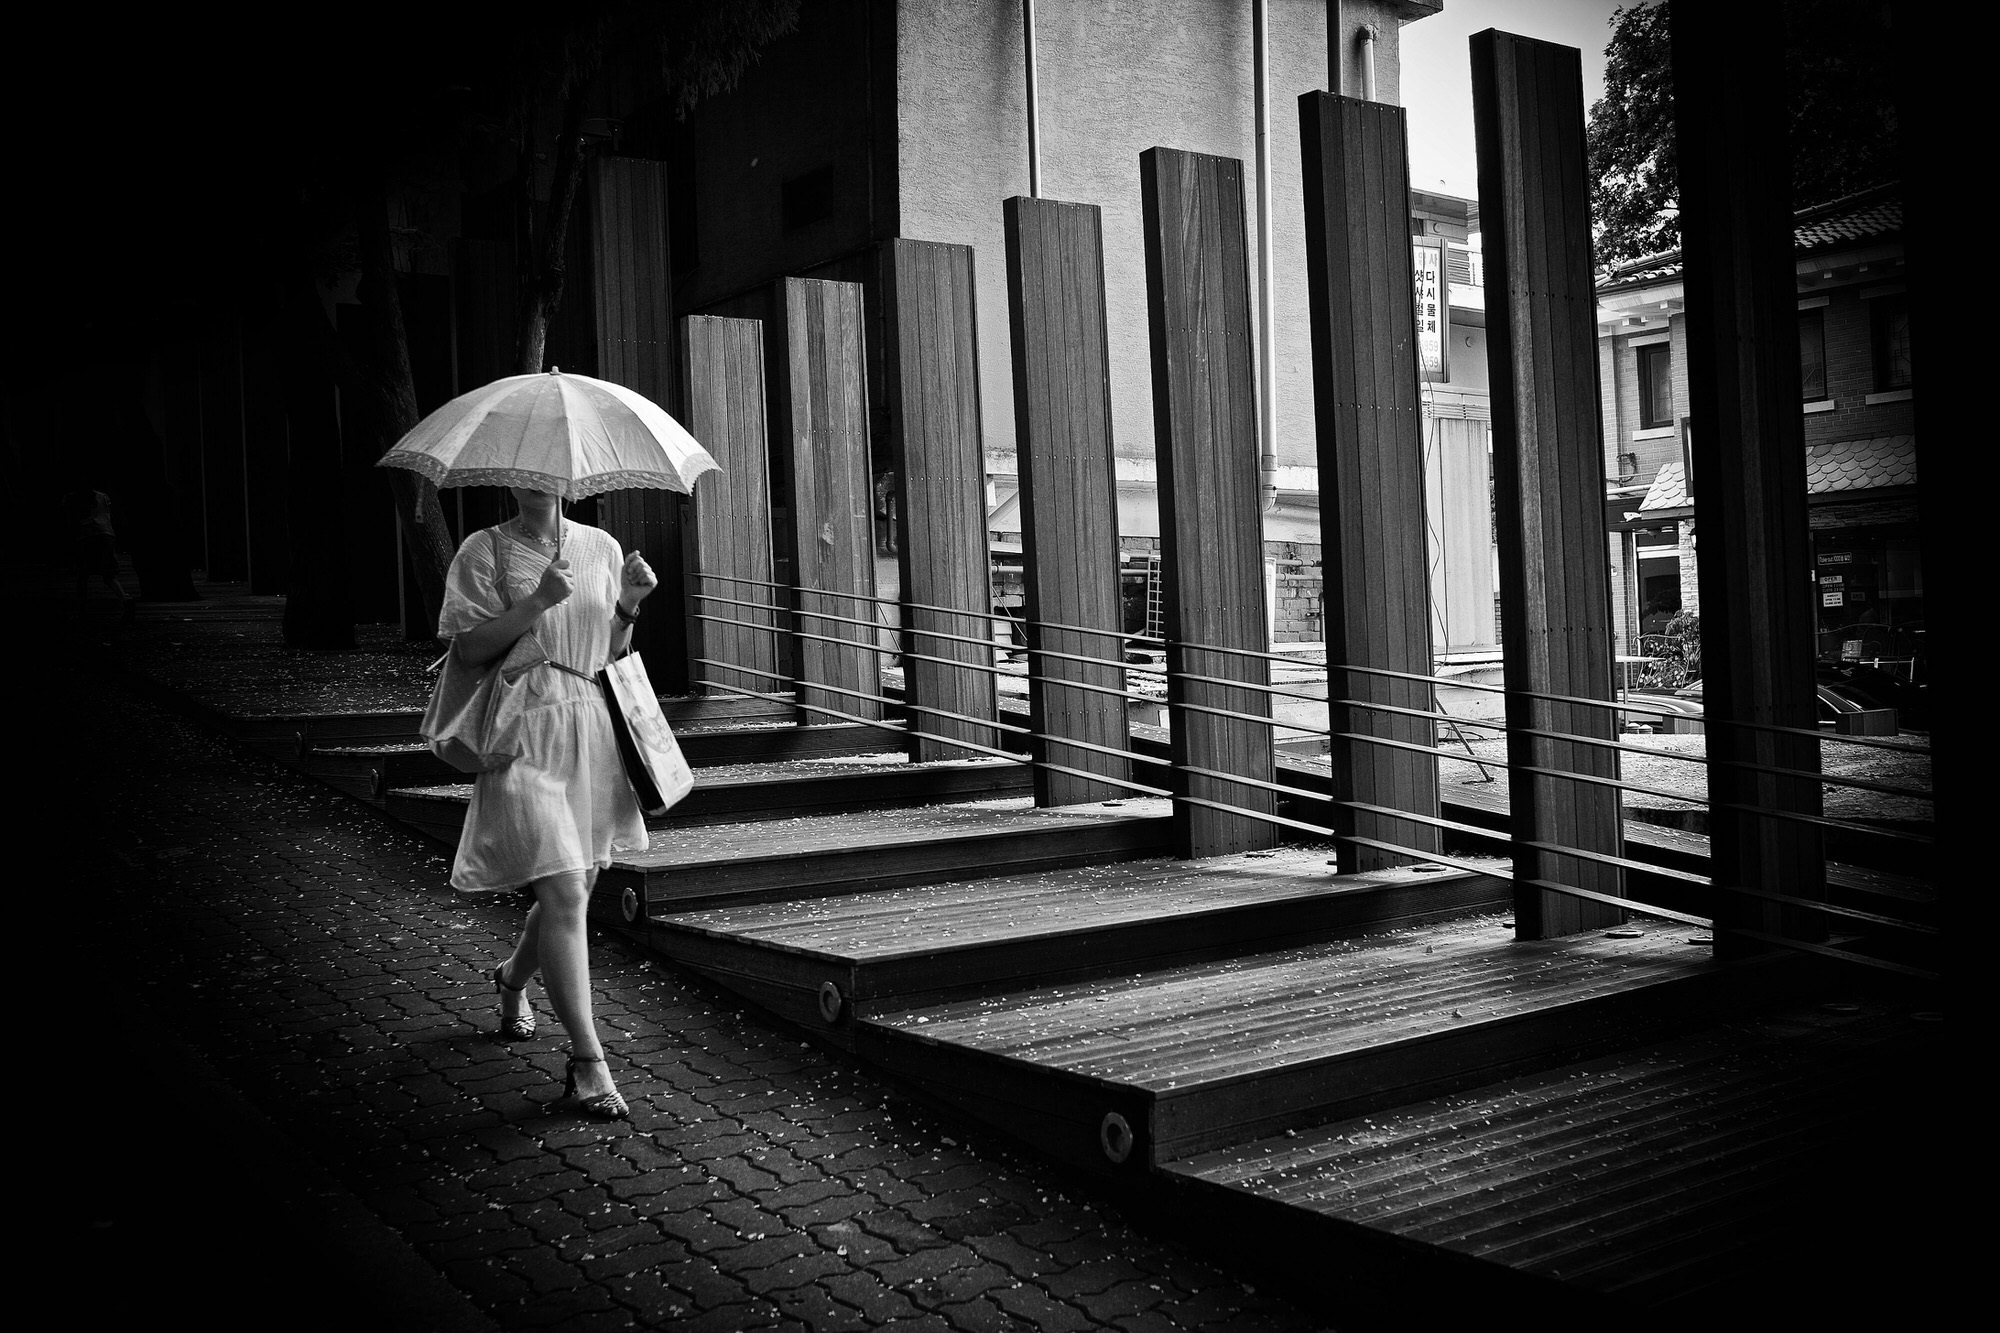 How to Master Black and White Street Photography - ERIC KIM